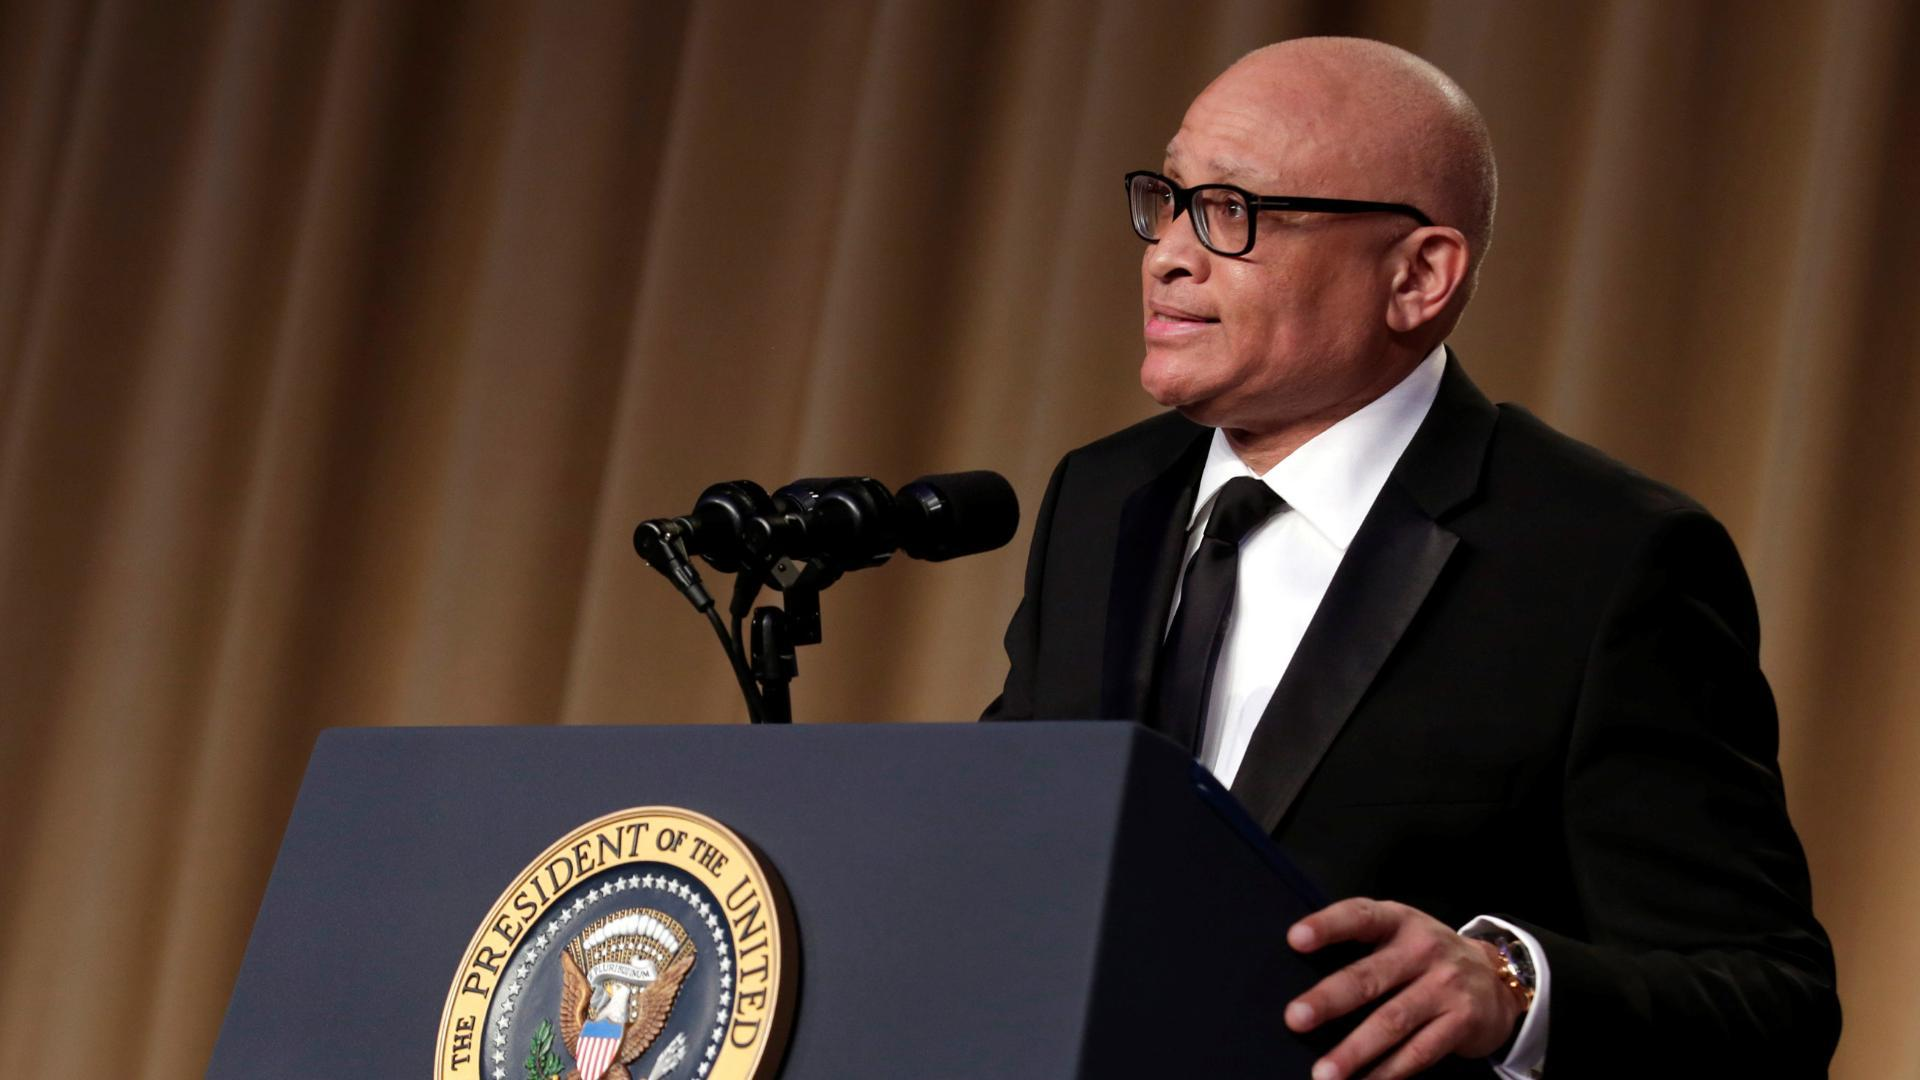 Larry Wilmore's correspondents' dinner speech, in 2 minutes